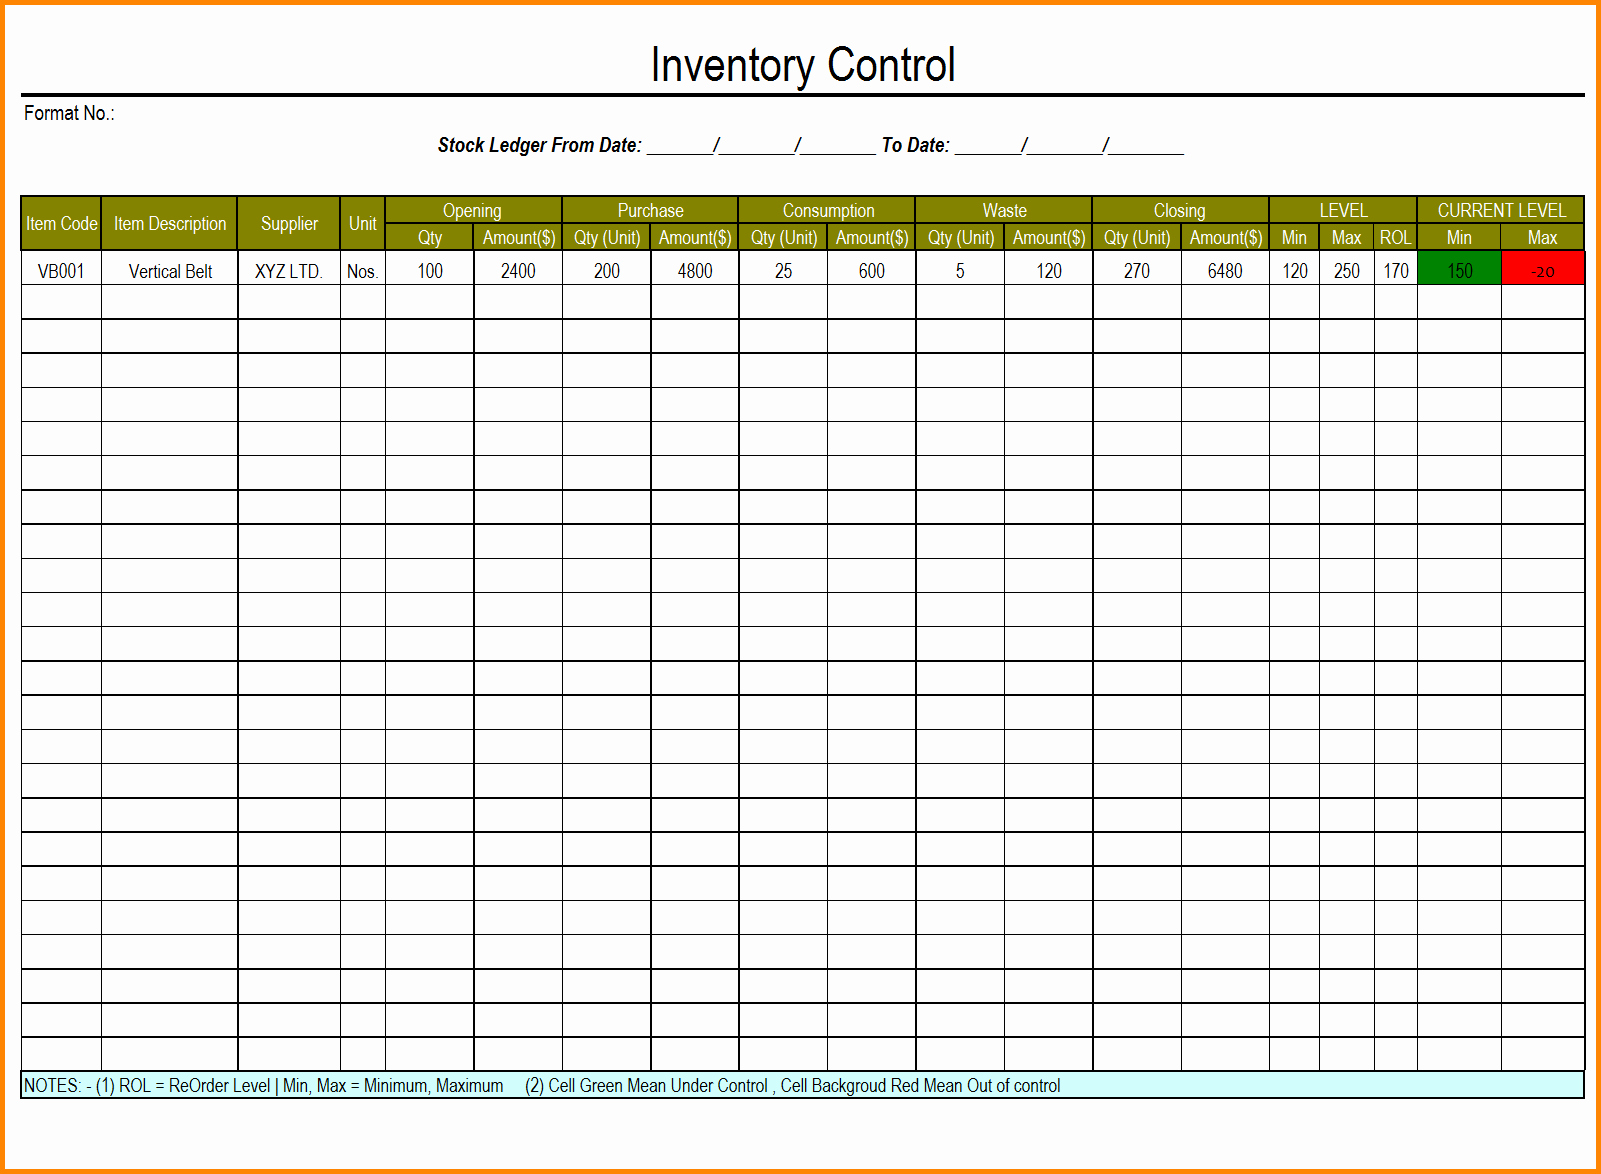 Excel Inventory Template with Pictures Luxury Excel Inventory Template with formulas 1 Inventory